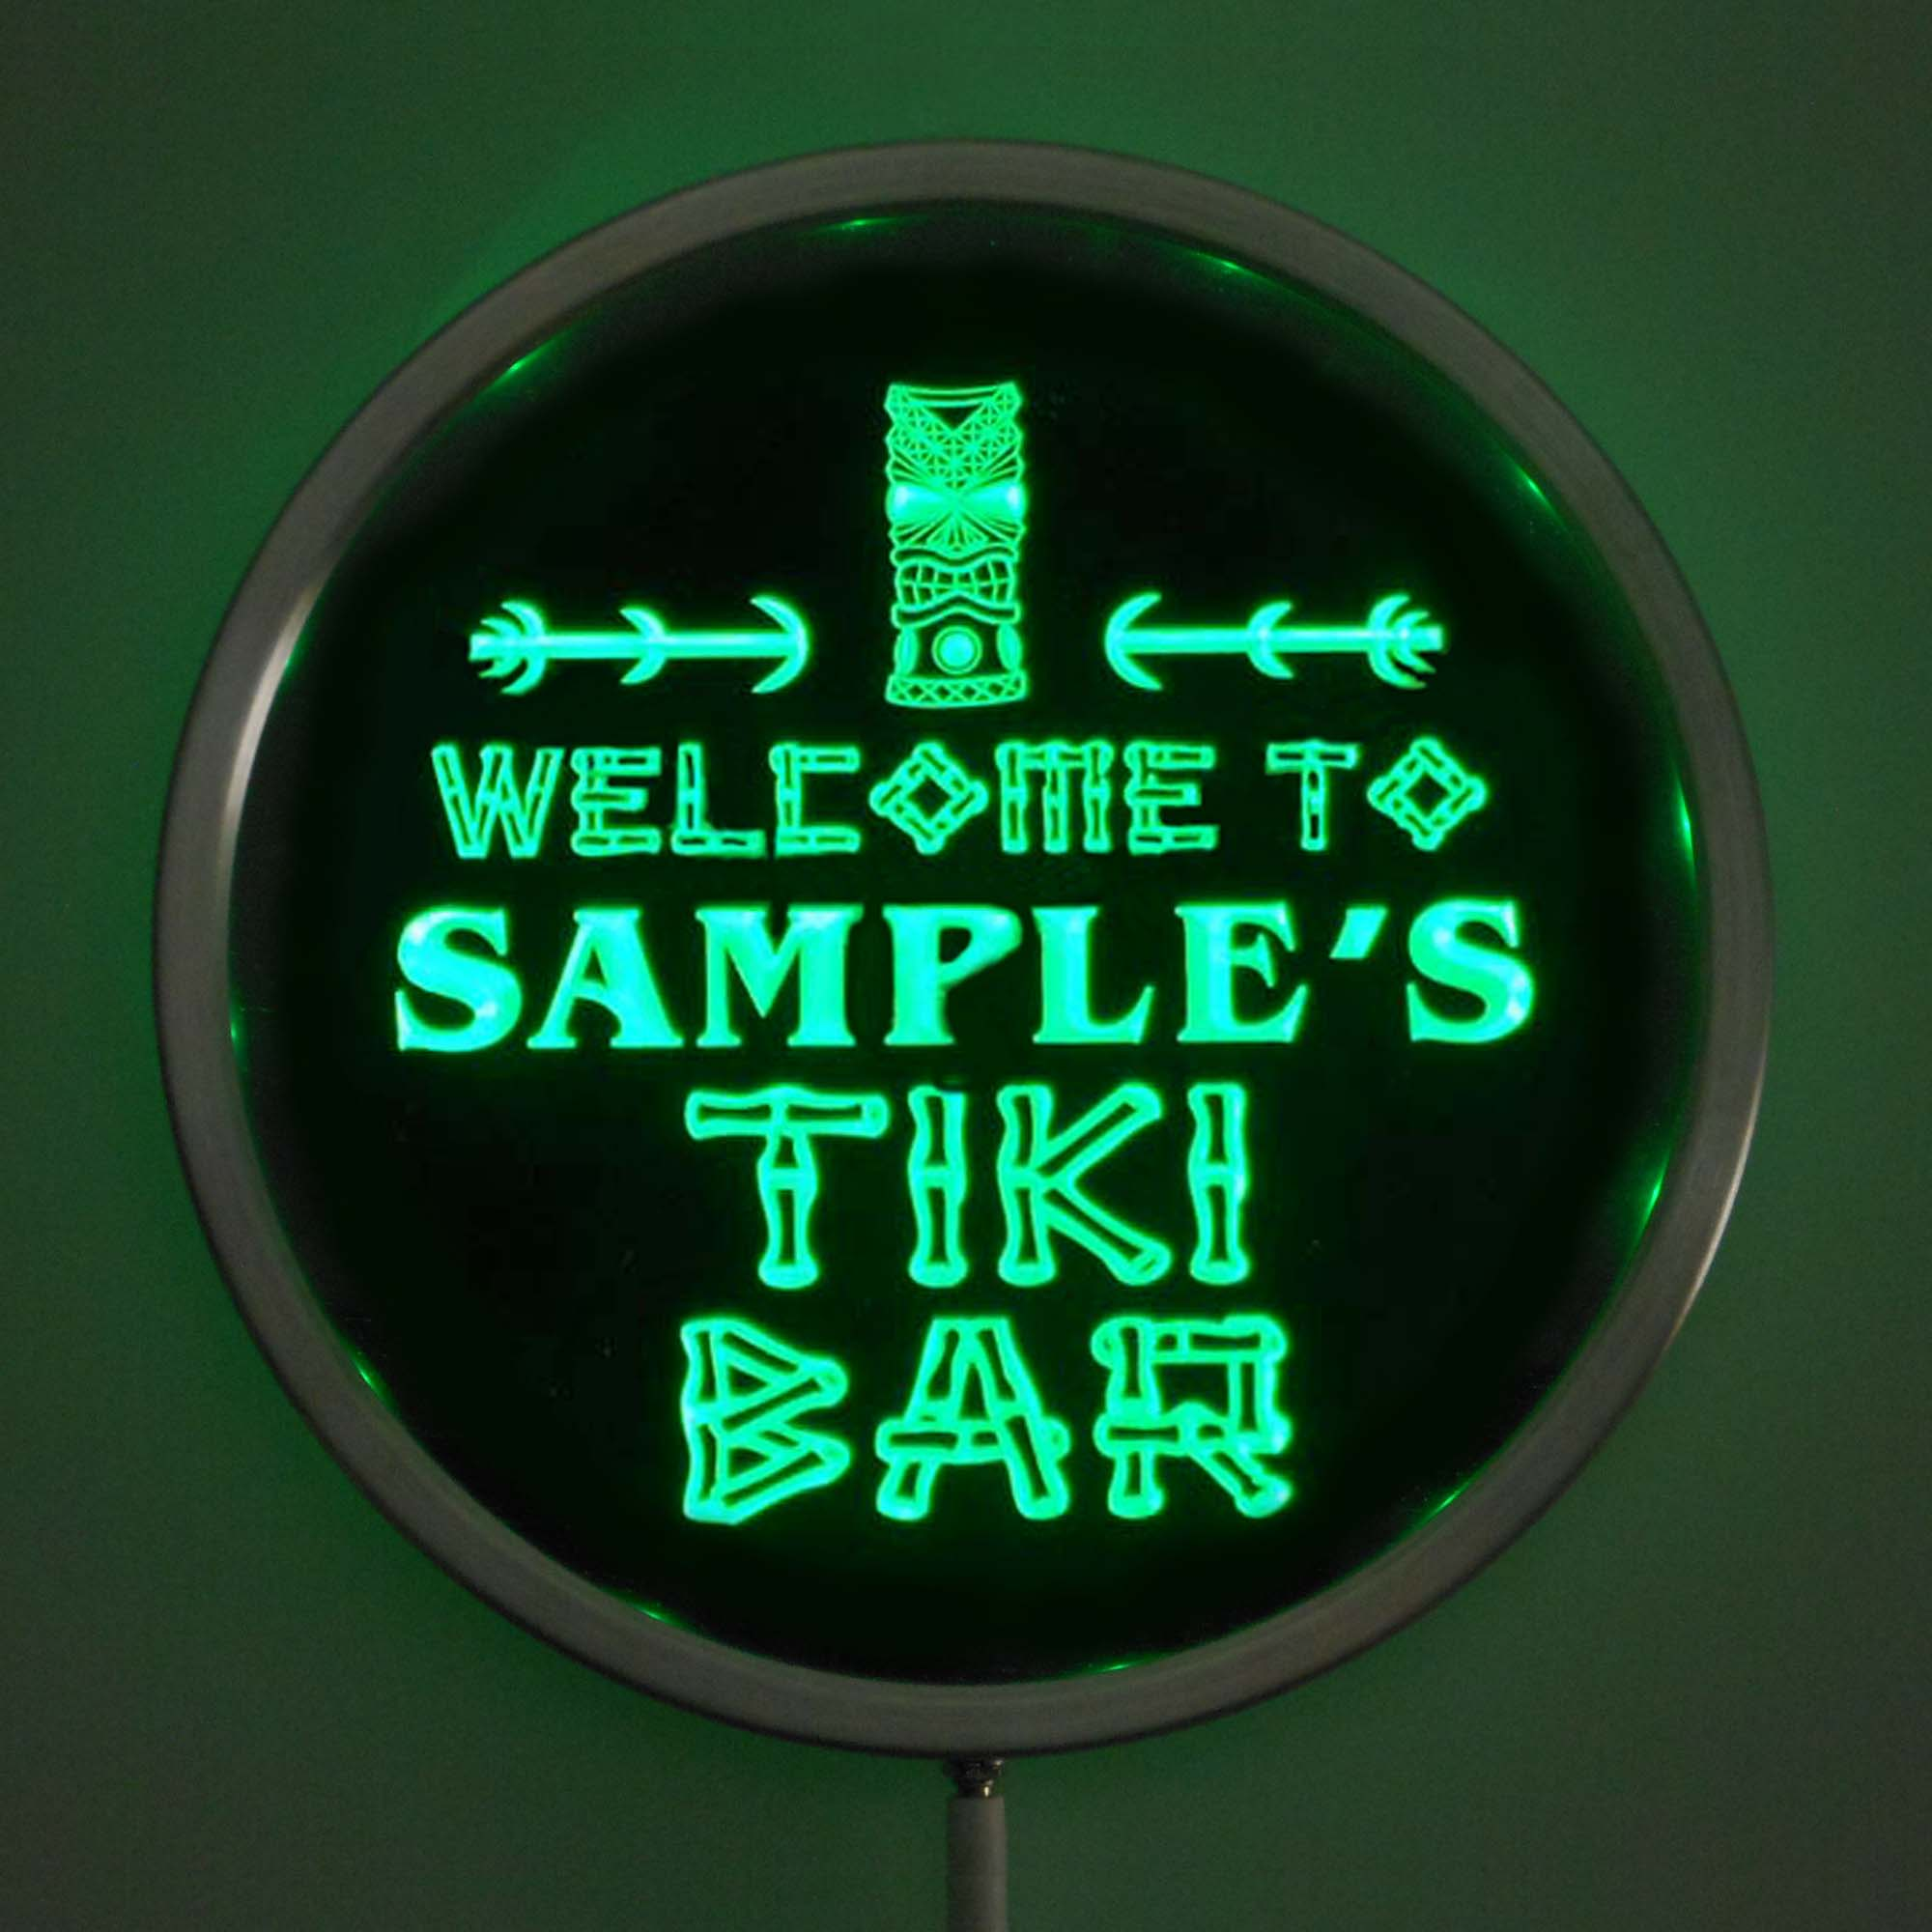 rs-pm-tm Custom LED Neon Round Signs 25cm/ 10 Inch - Personalized TIKI BAR Sign RGB Multi-Color Remote Wireless Control